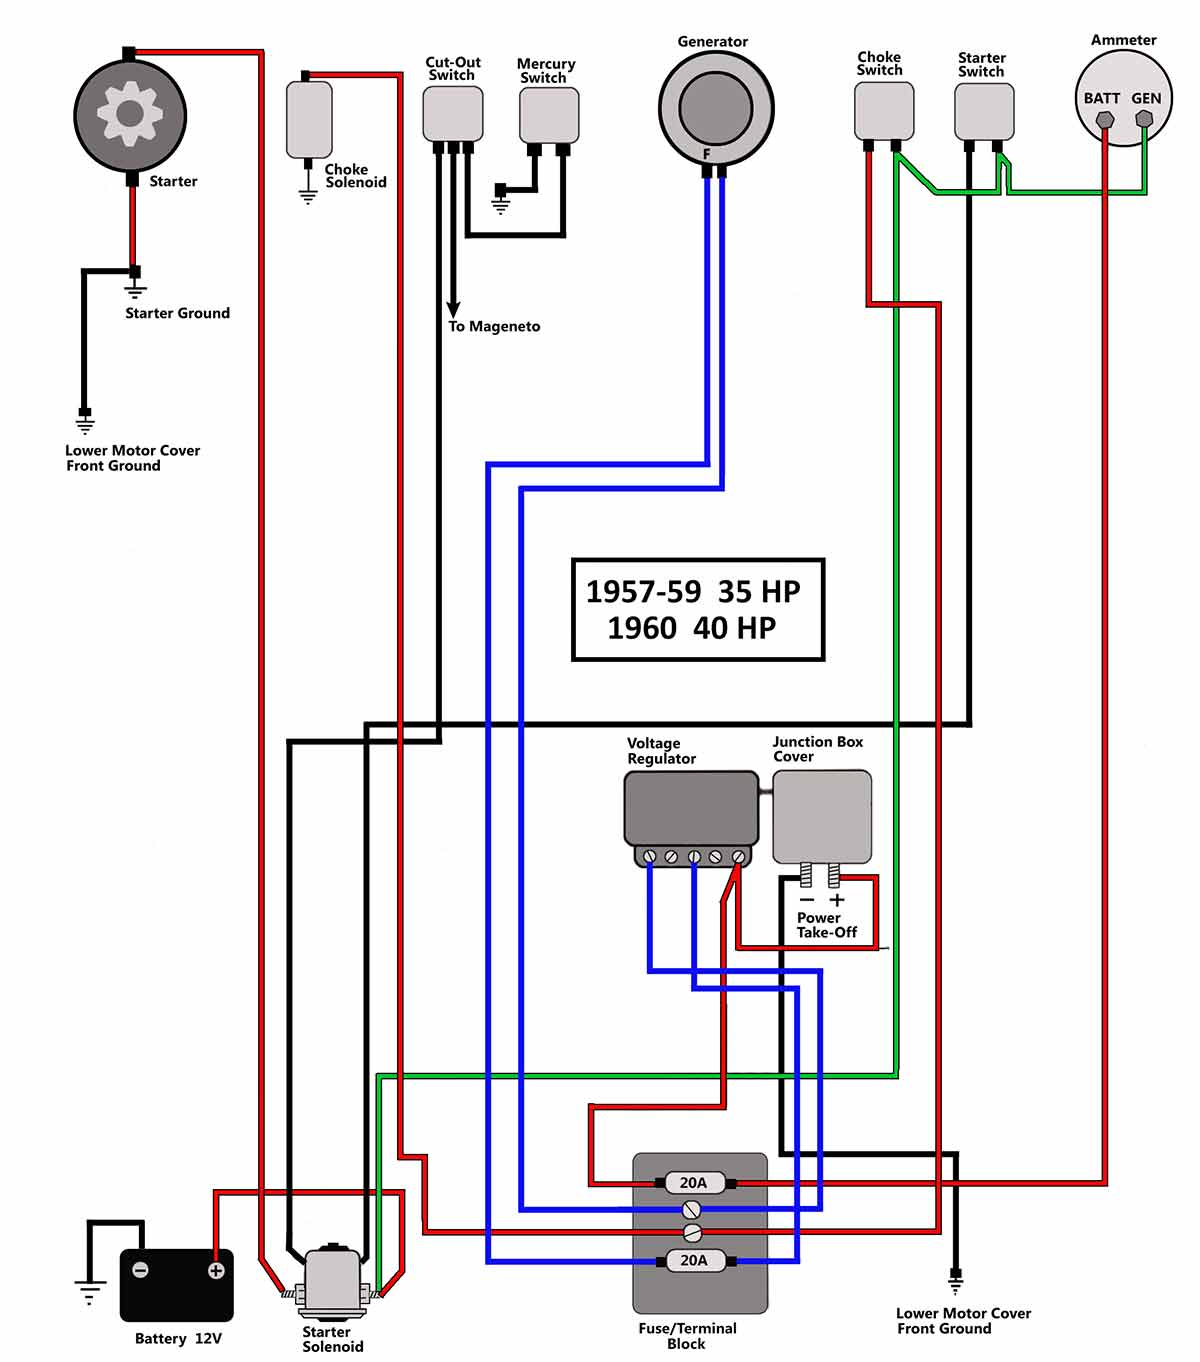 wiring diagram yamaha outboard ignition switch mains powered smoke alarm uk 10 40 hp